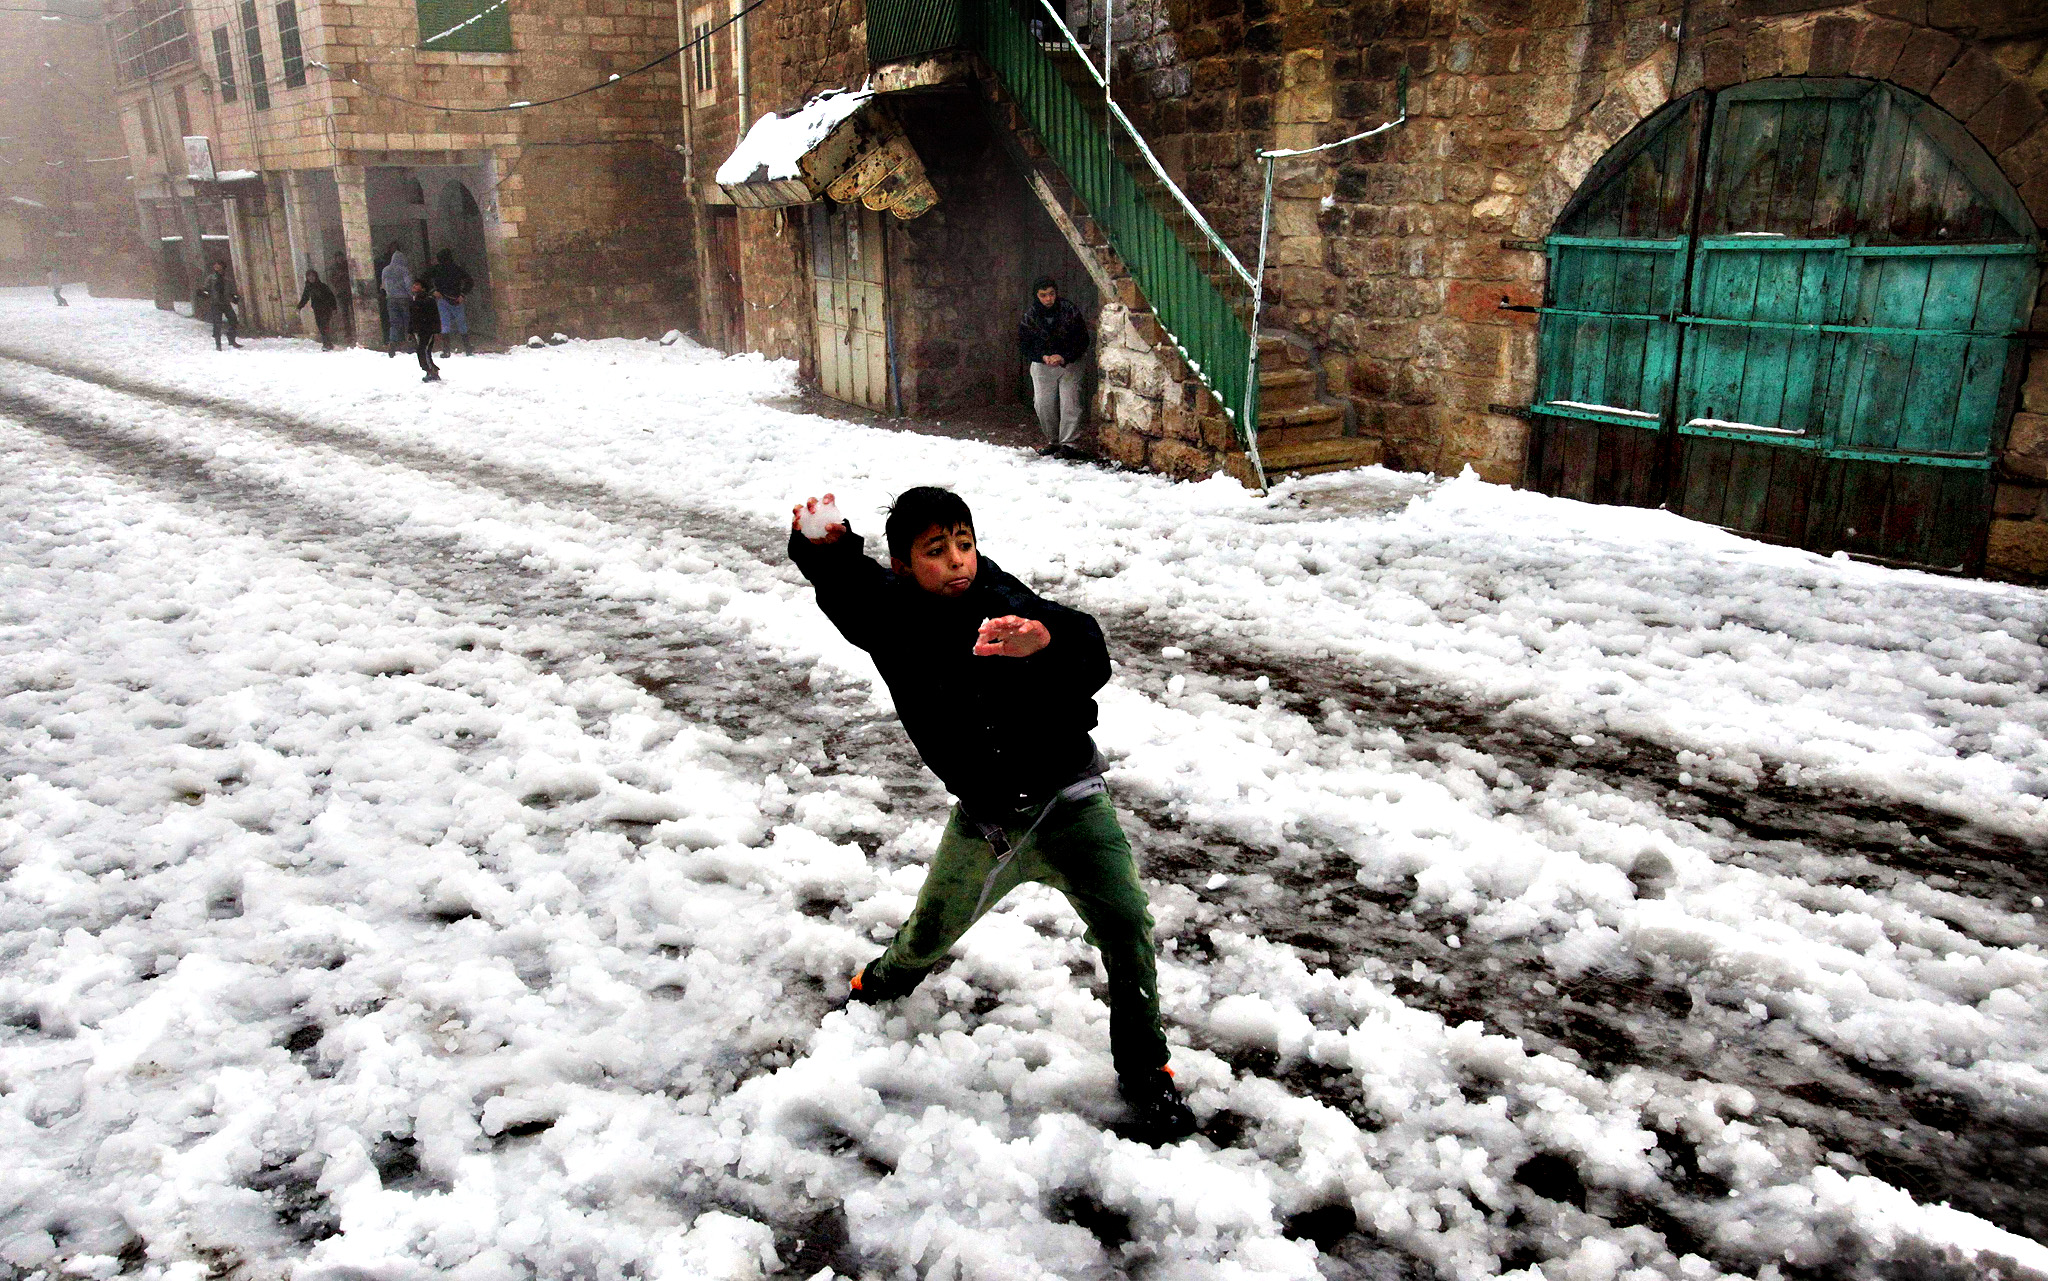 A Palestinian boys throws a snowball near Ibrahimi Mosque or the Tomb of the Patriarch, a religious site to both Muslims and Jew, in the West Bank town of Hebron as snow falls on December 12, 2013. A bruising winter storm brought severe weather to the Middle East, forcing the closure of roads and schools and blanketing much of the high altitude areas with snow and ice.